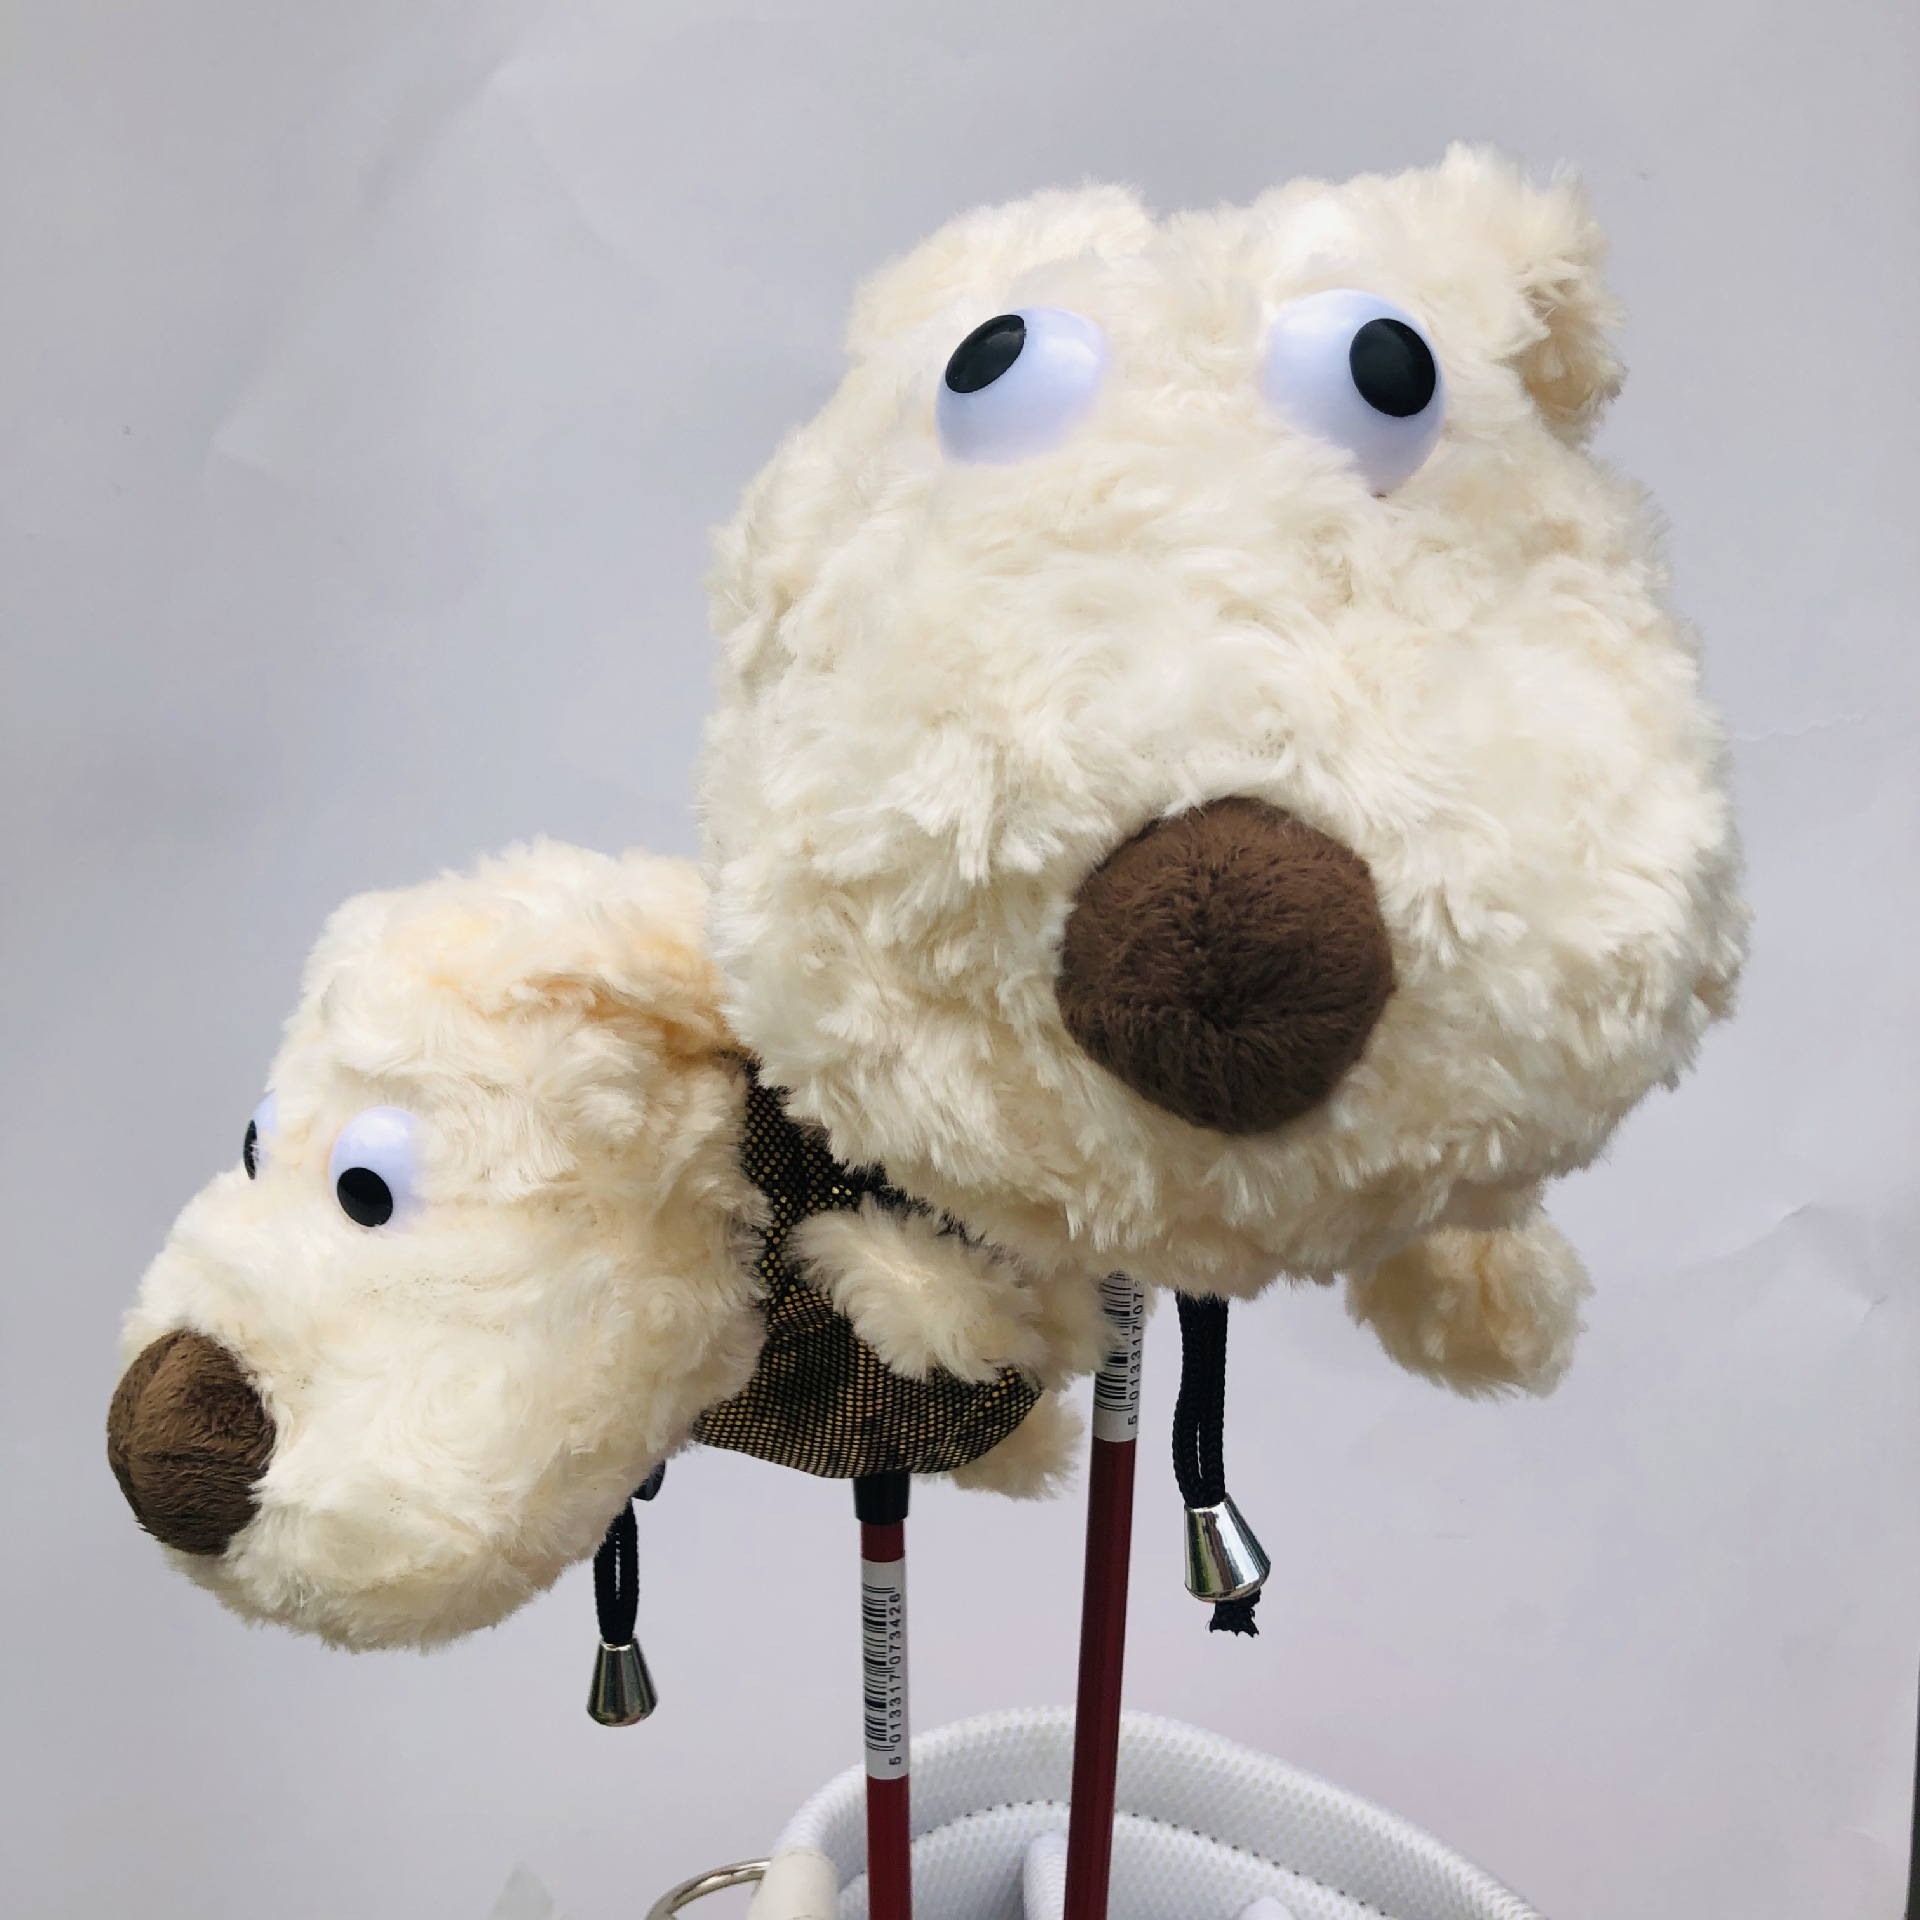 1 Pcs Golf Club Headcover For Driver Fairway Cute Puppy Covers Golf Wood Headcovers